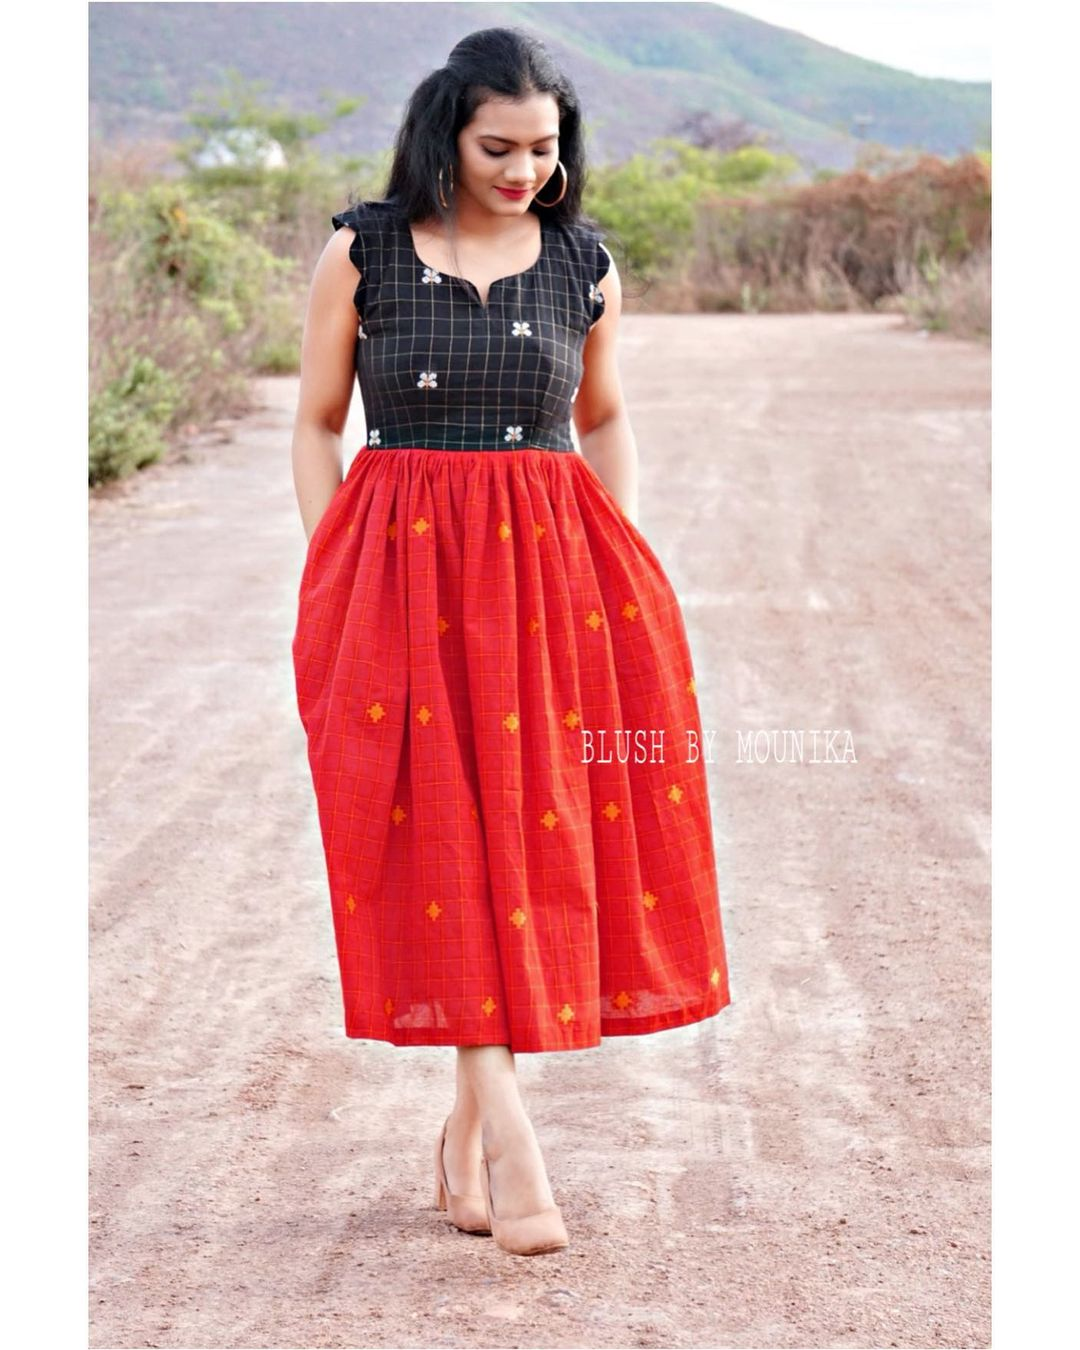 Tara. Red and Black Handloom dress with Handwoven motifs. The dress has pockets and cotton lining. Comes with a detachable thread to make a bow. Price :  ₹2850/-  2021-05-16